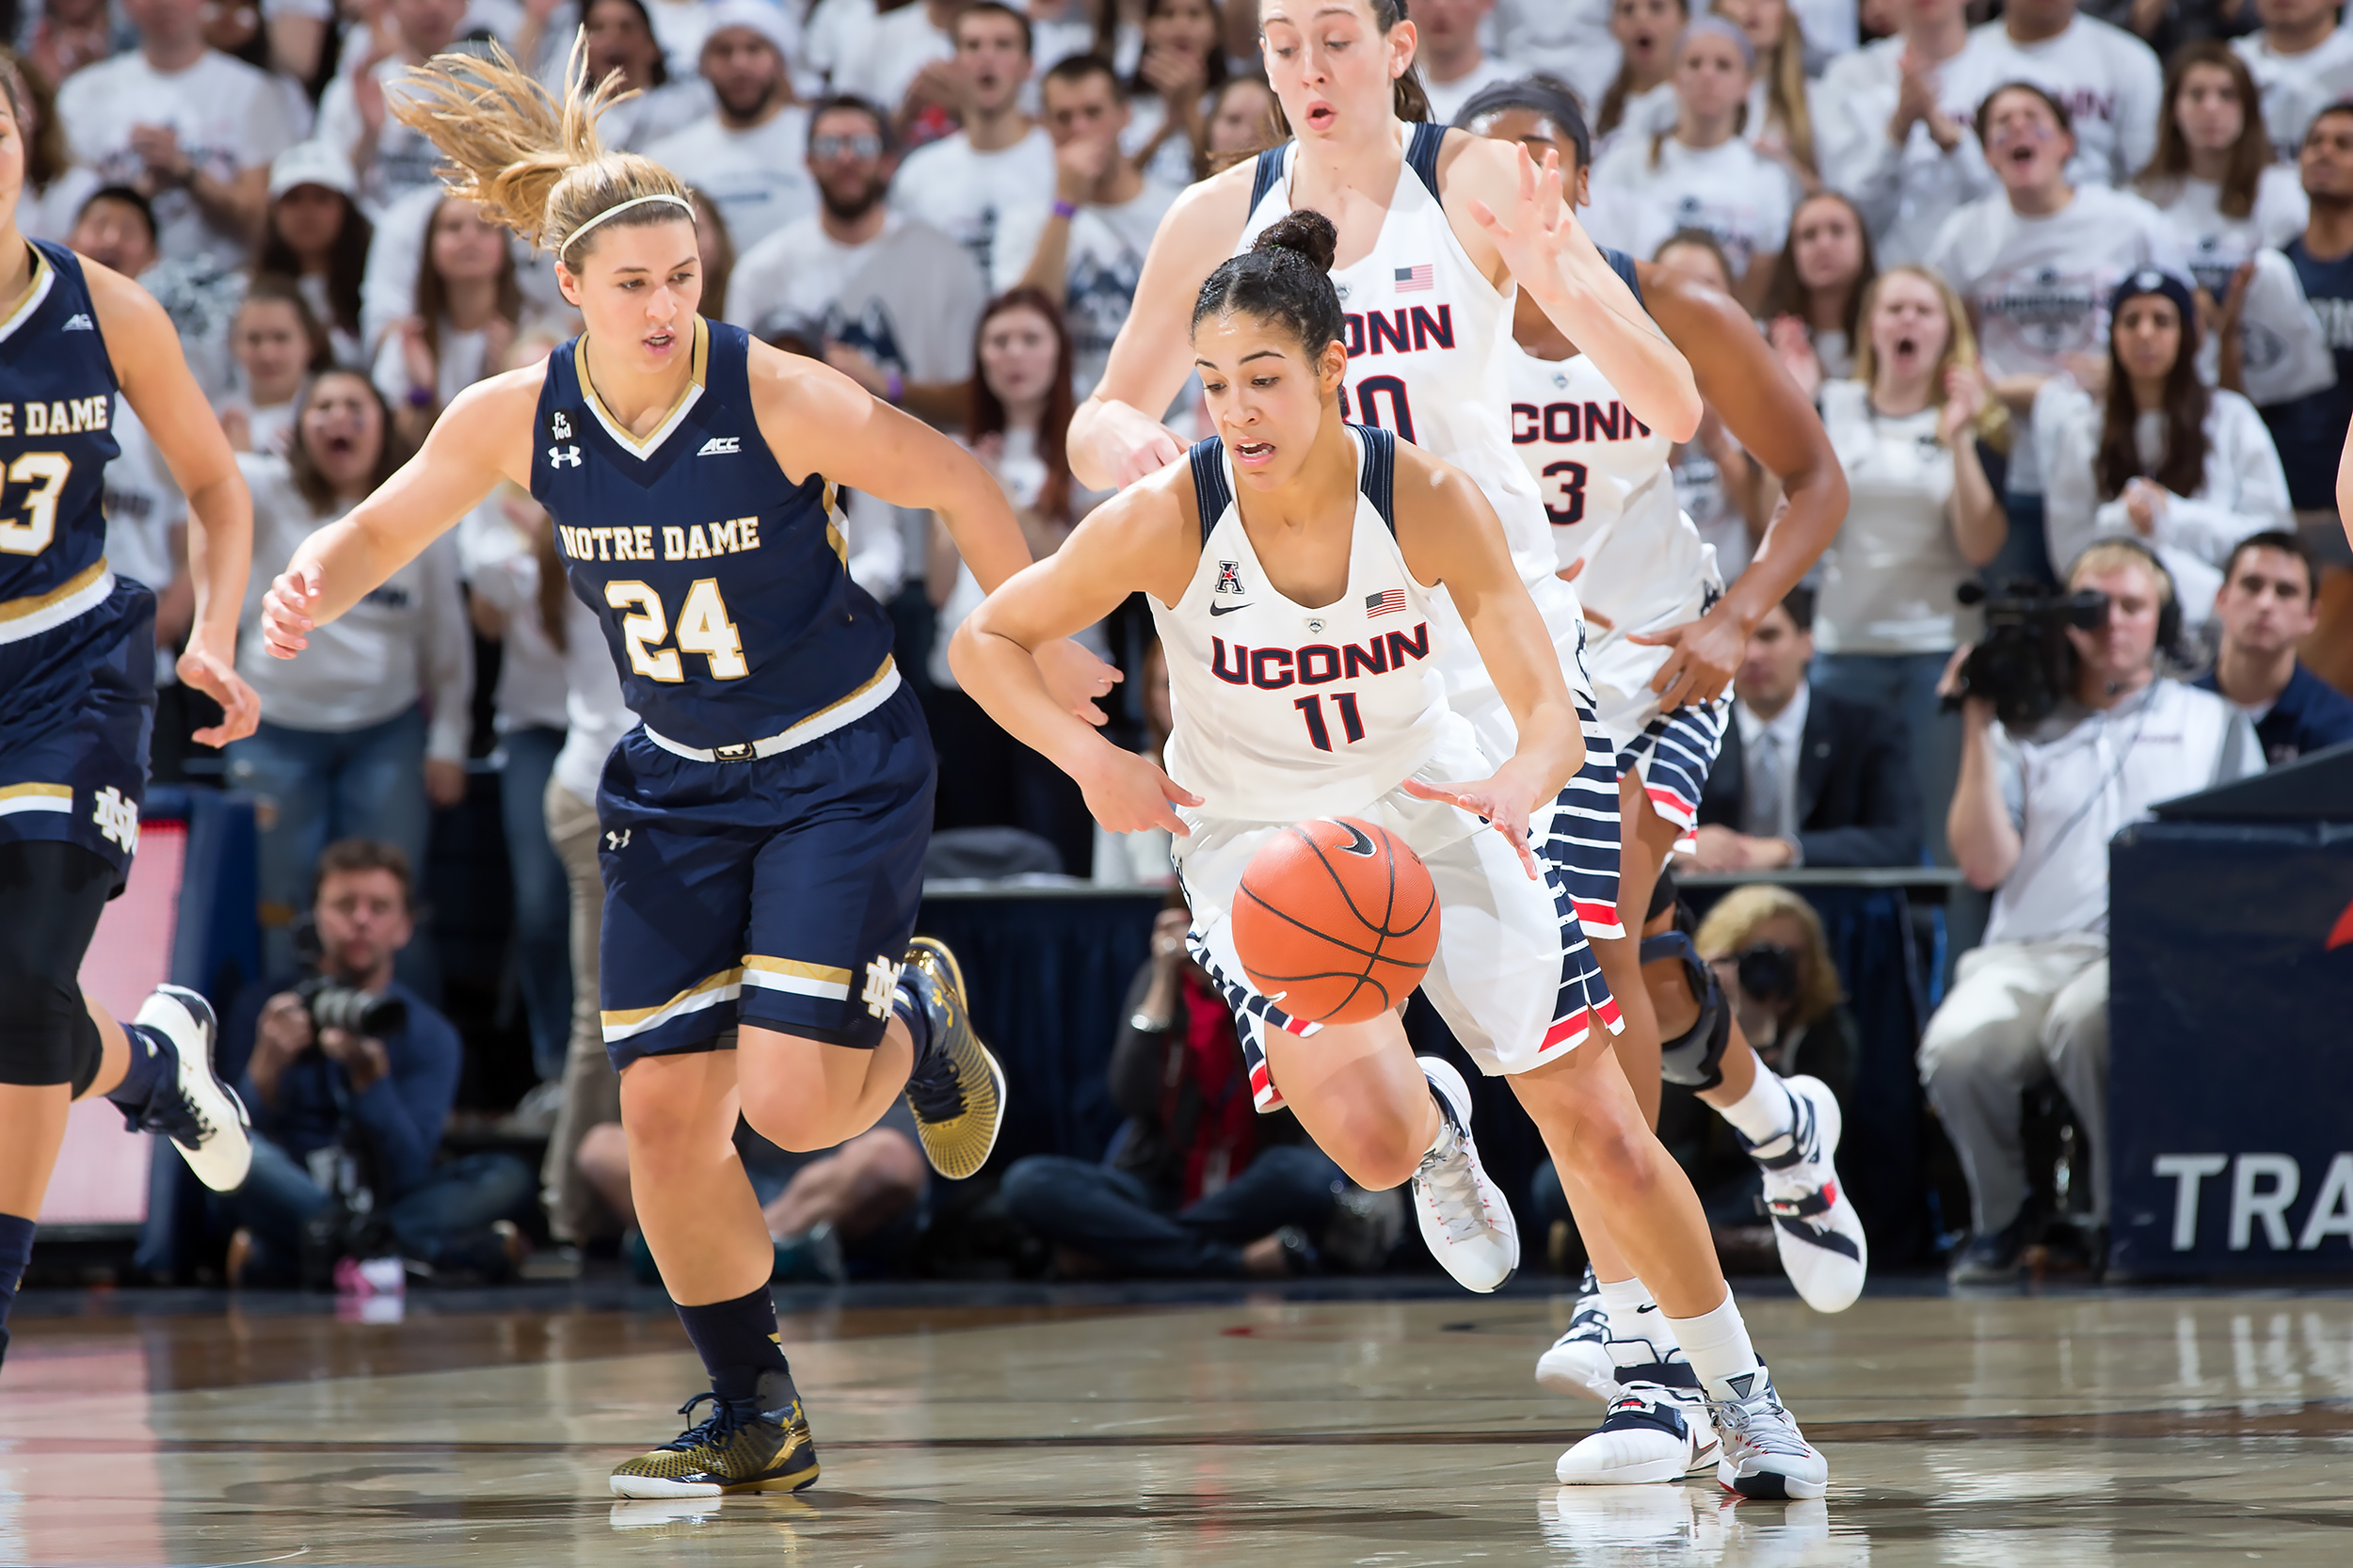 UConn's Kia Nurse on the court. Nurse has been honored in the preseason by the American Athletic Conference. (Stephen Slade '89 (SFA) for UConn)